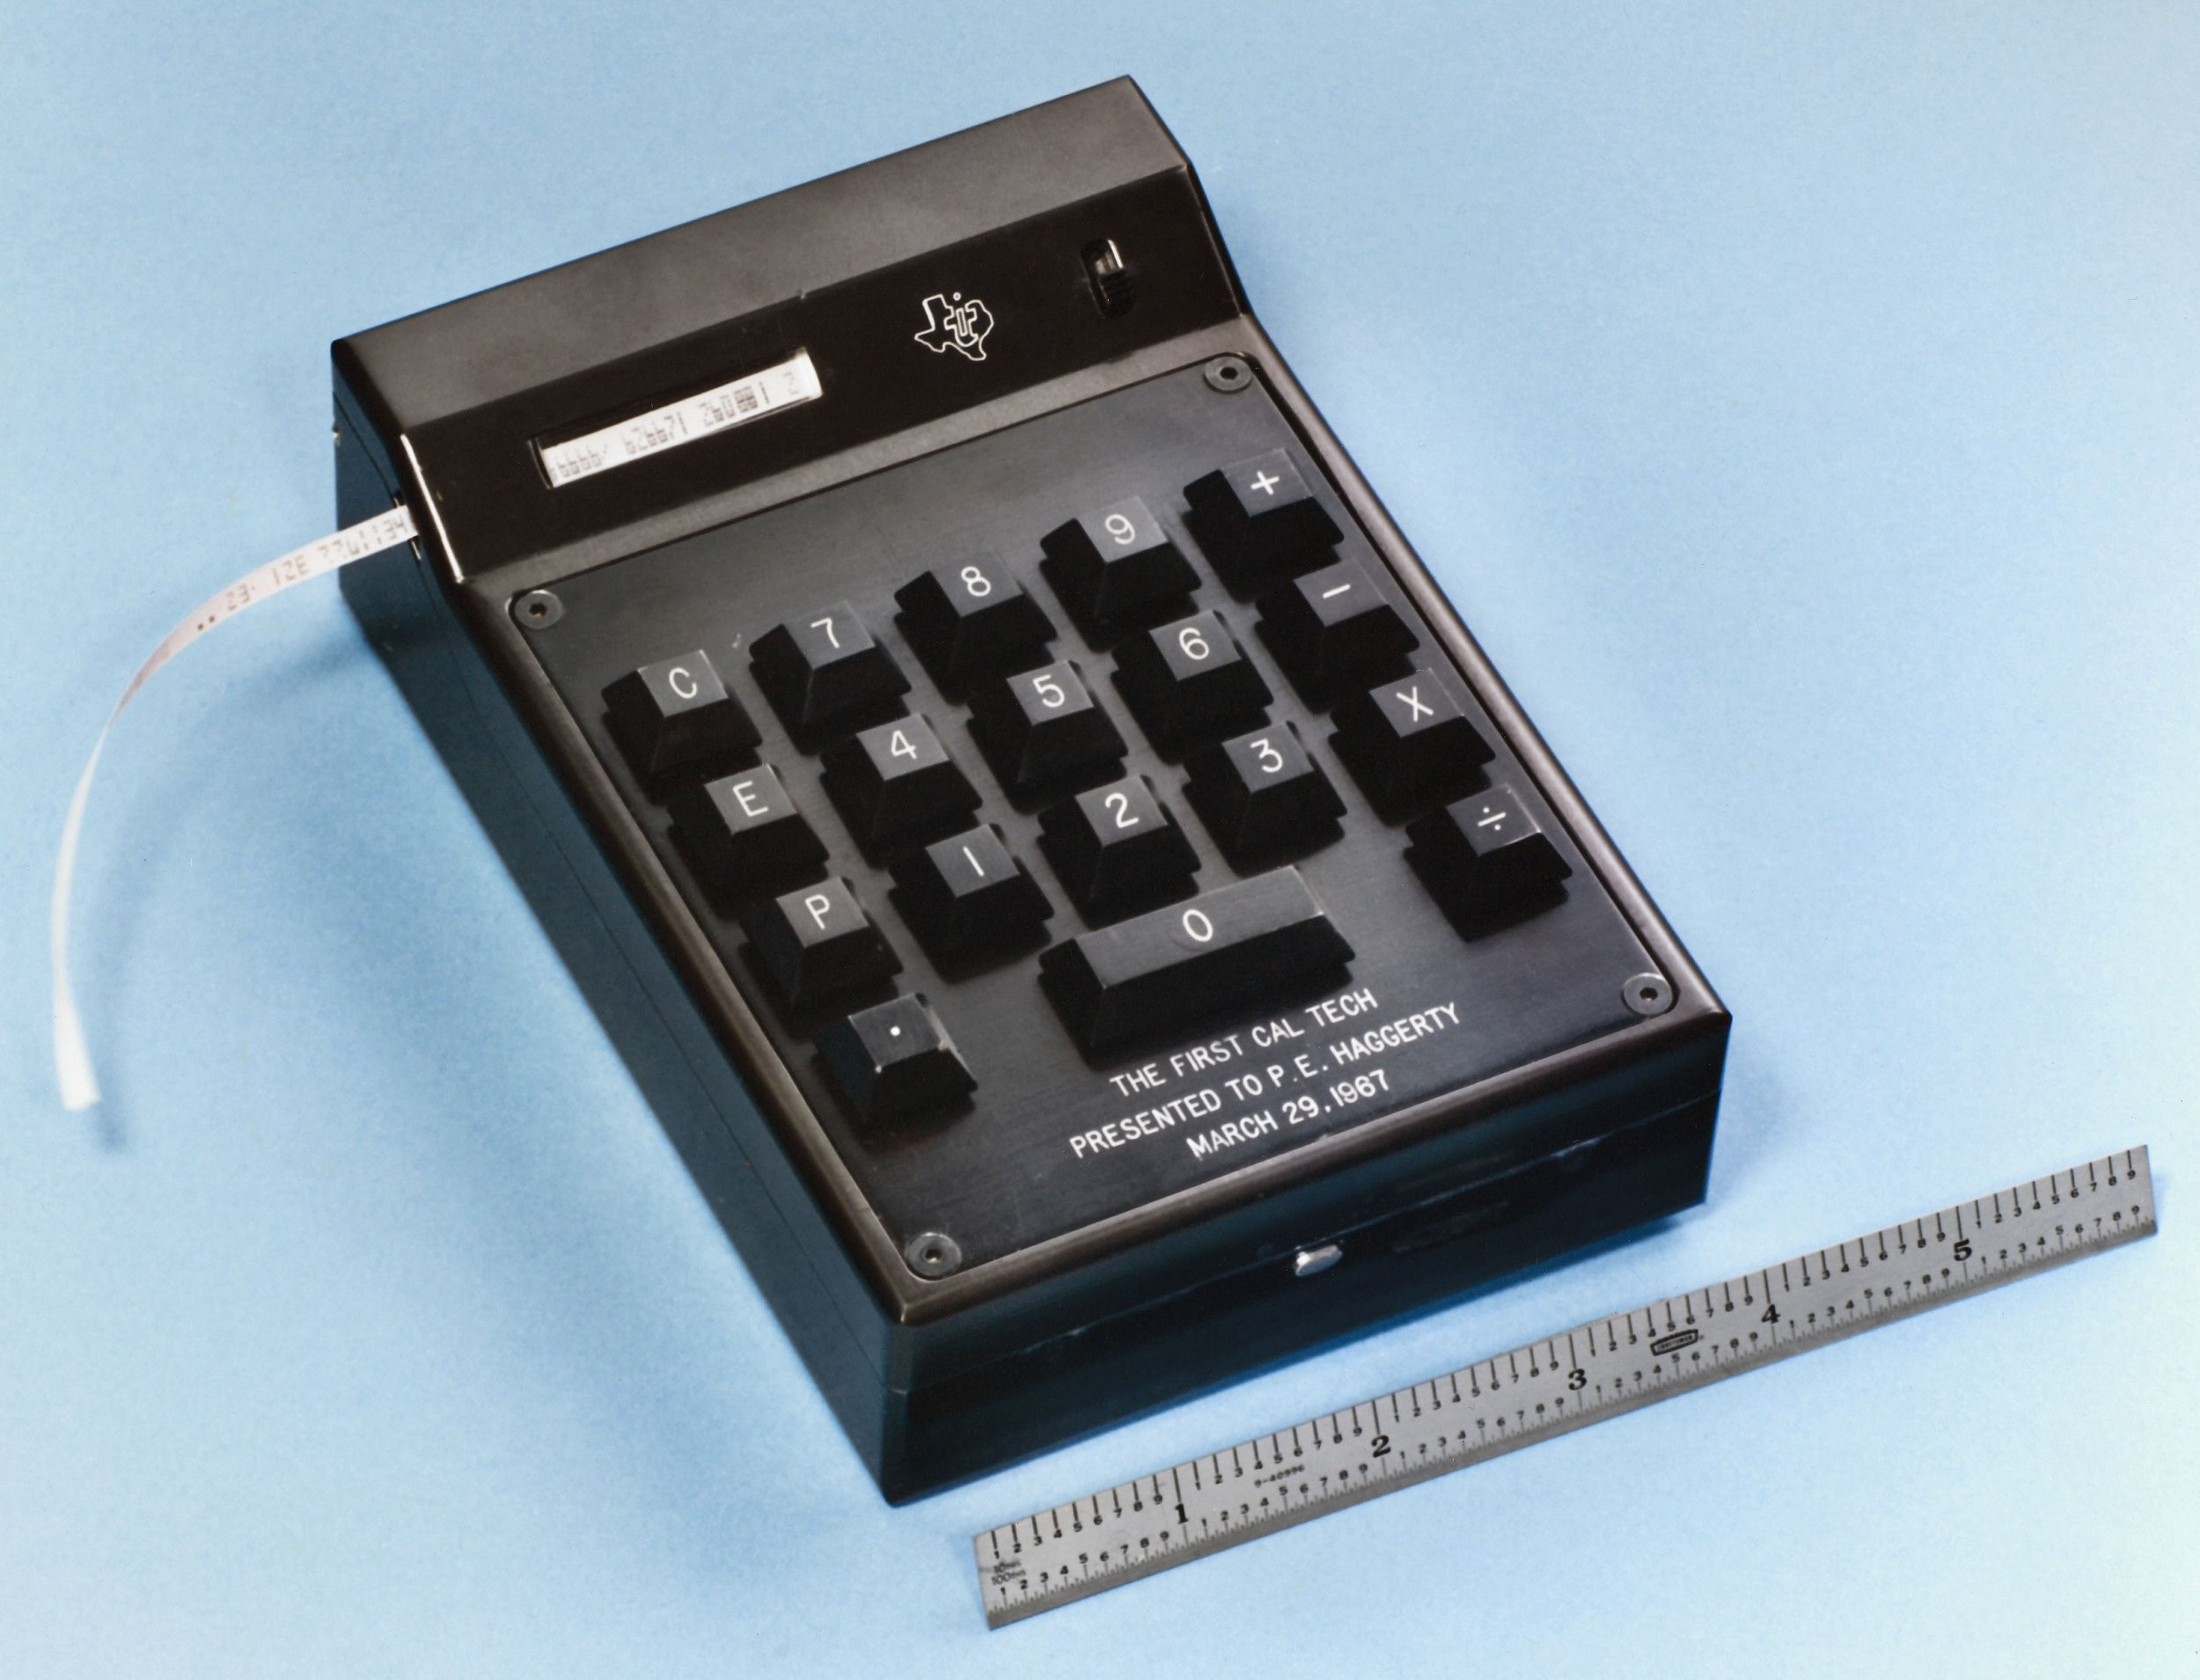 This device was invented in 1967. Do you know what it is?